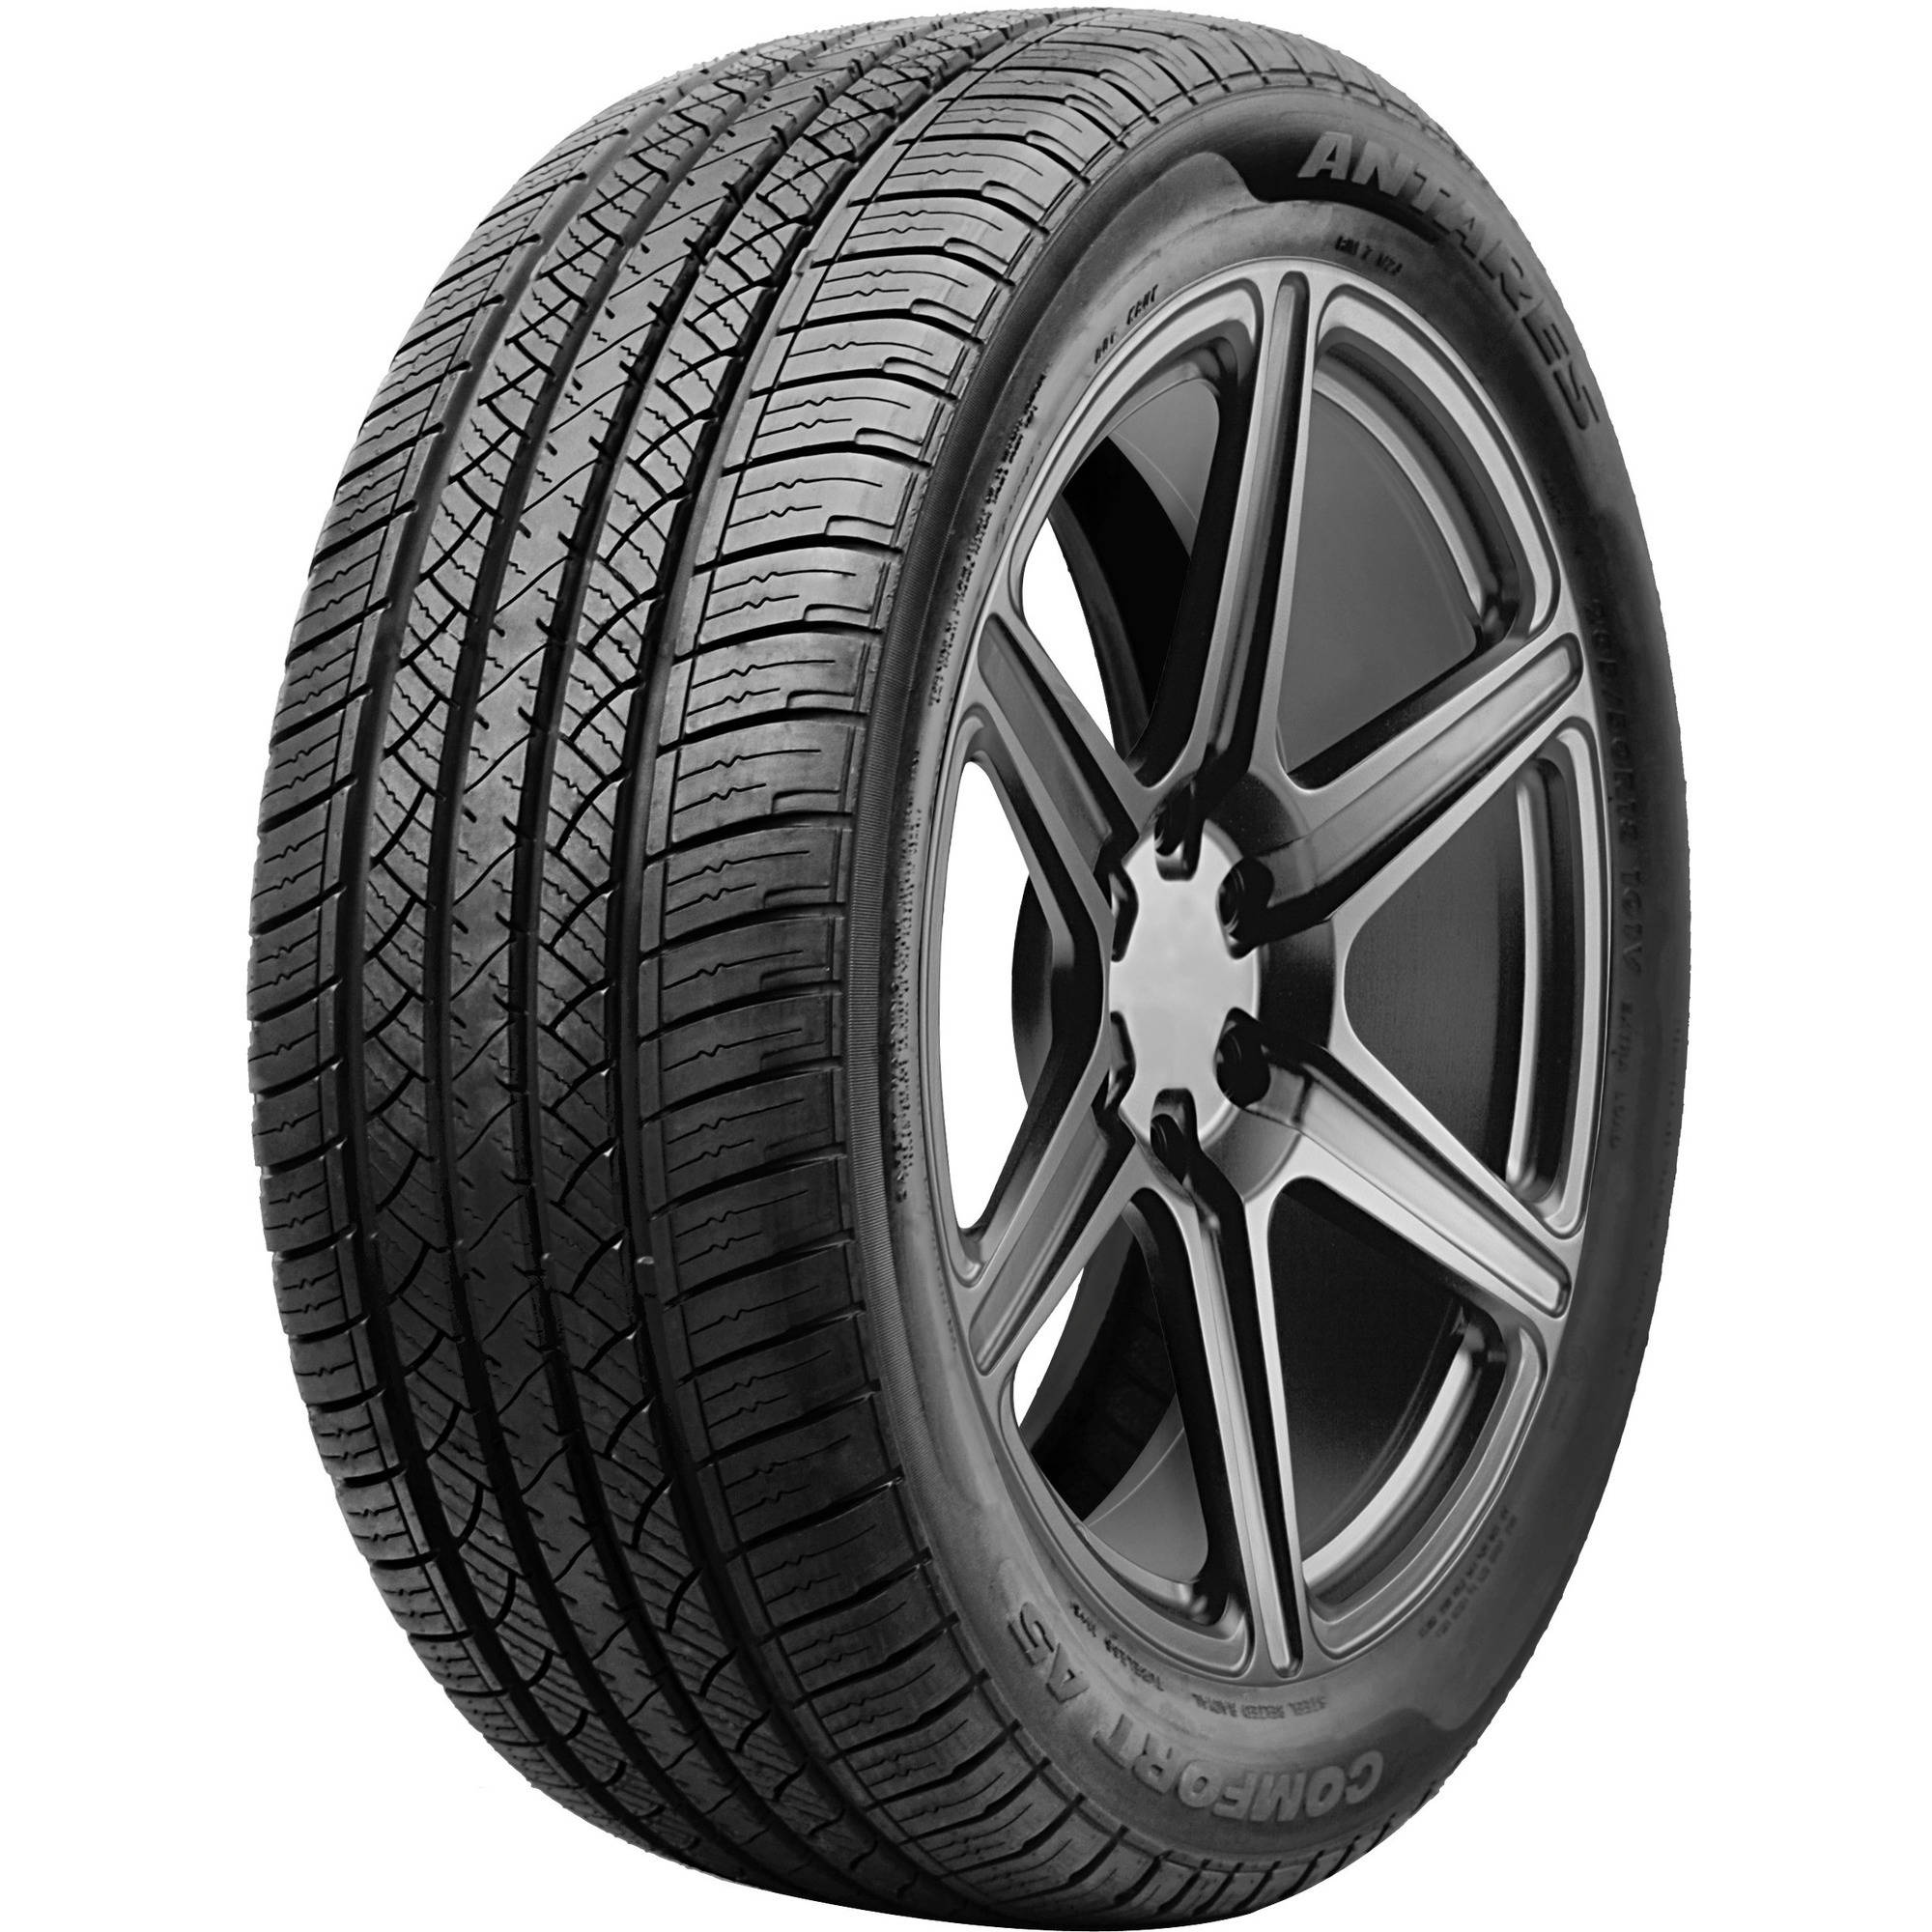 Antares Comfort A5 235 55R19 101V Tire by Antares